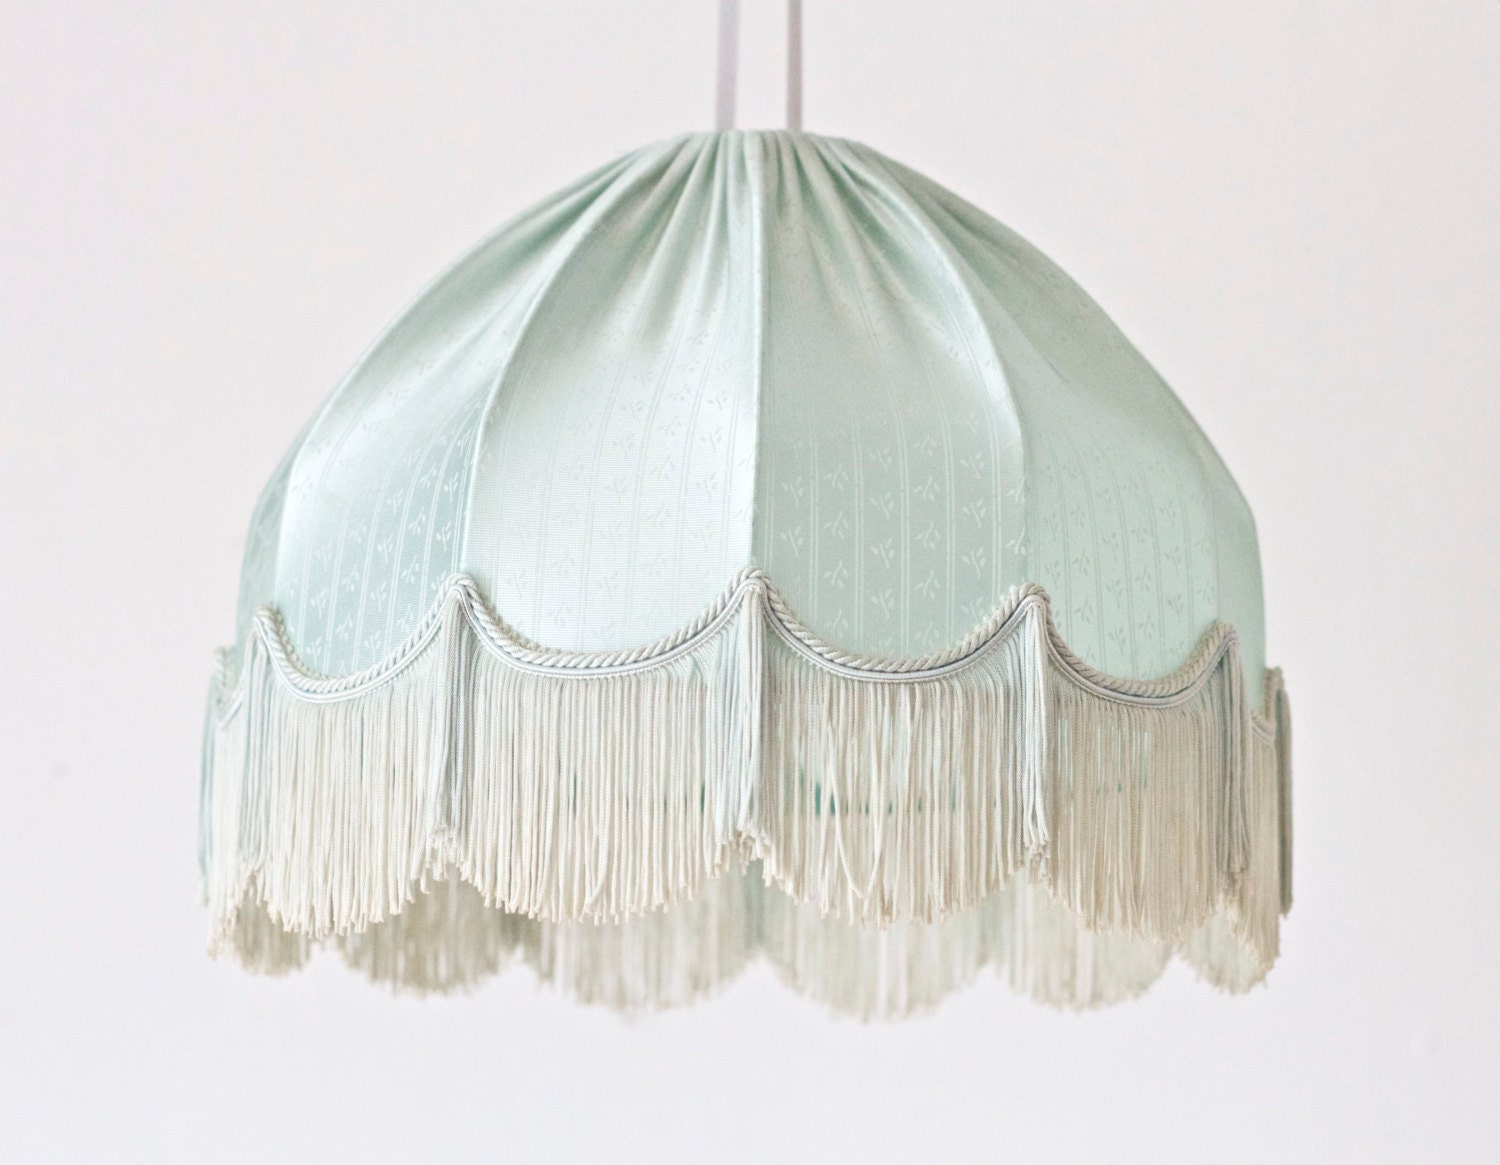 french boudoir fringe lamp shade in light turquoise by meanglean. Black Bedroom Furniture Sets. Home Design Ideas